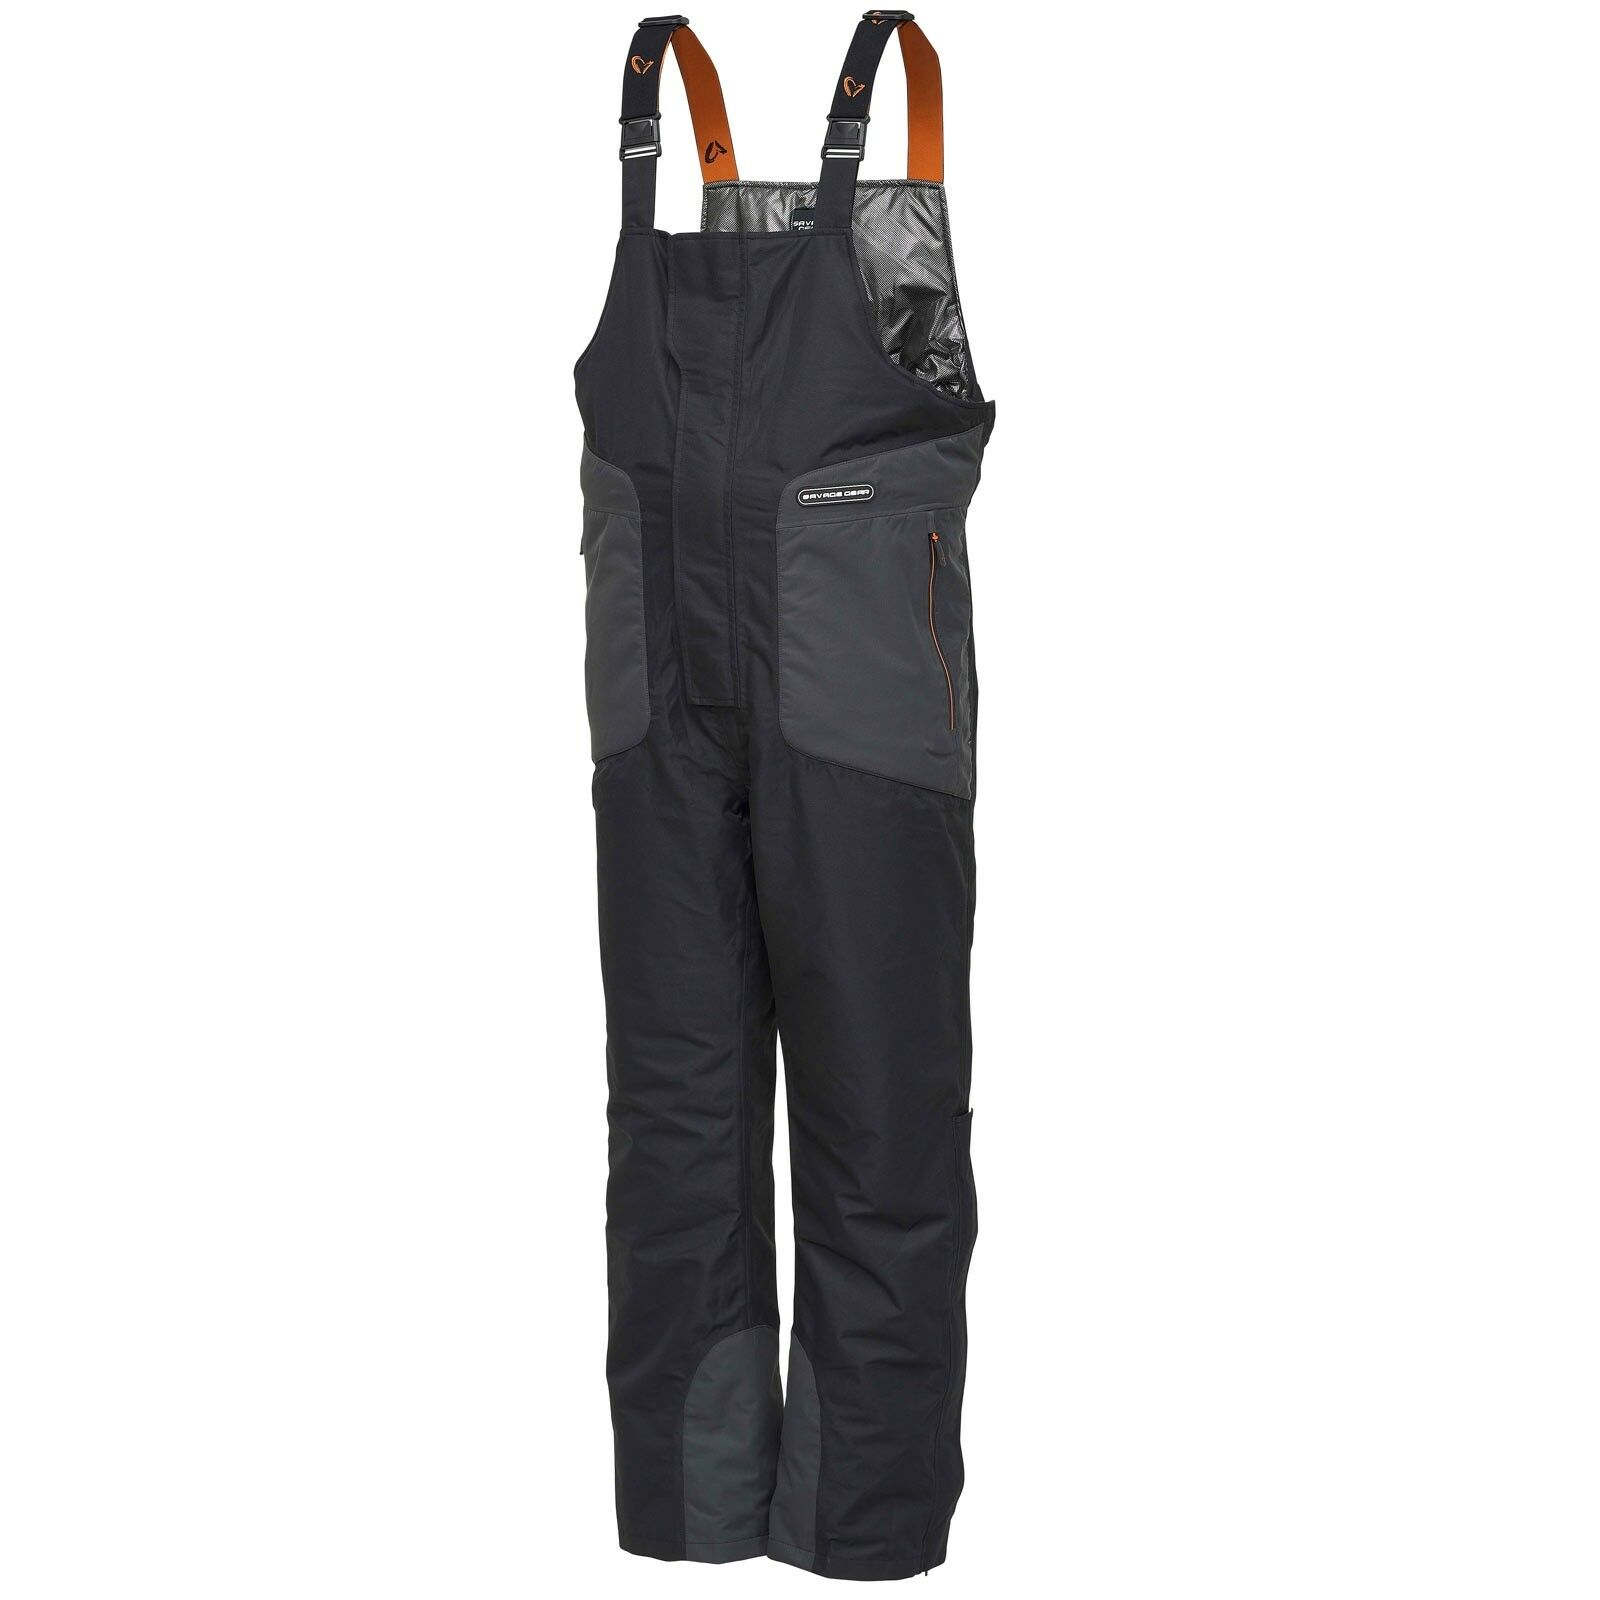 Savage Gear Angeln Thermobekleidung Winterhose - HeatLite Thermo B&B XL